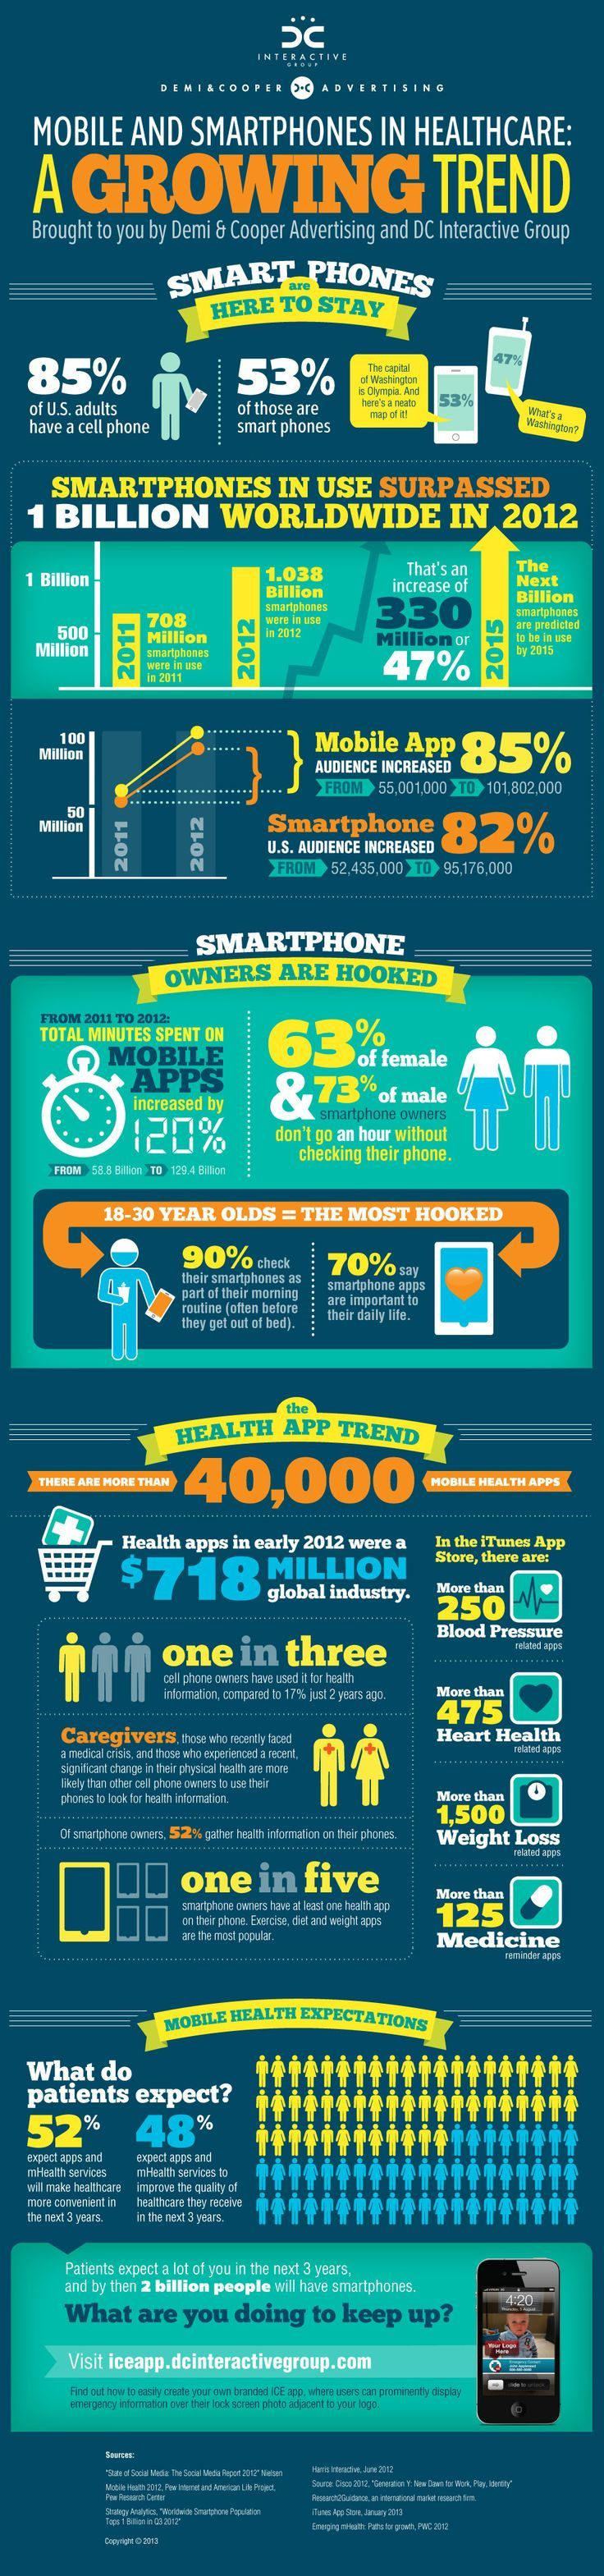 Mobile and Smartphone in Healthcare #infographics #mhealth #mobilehealthcare